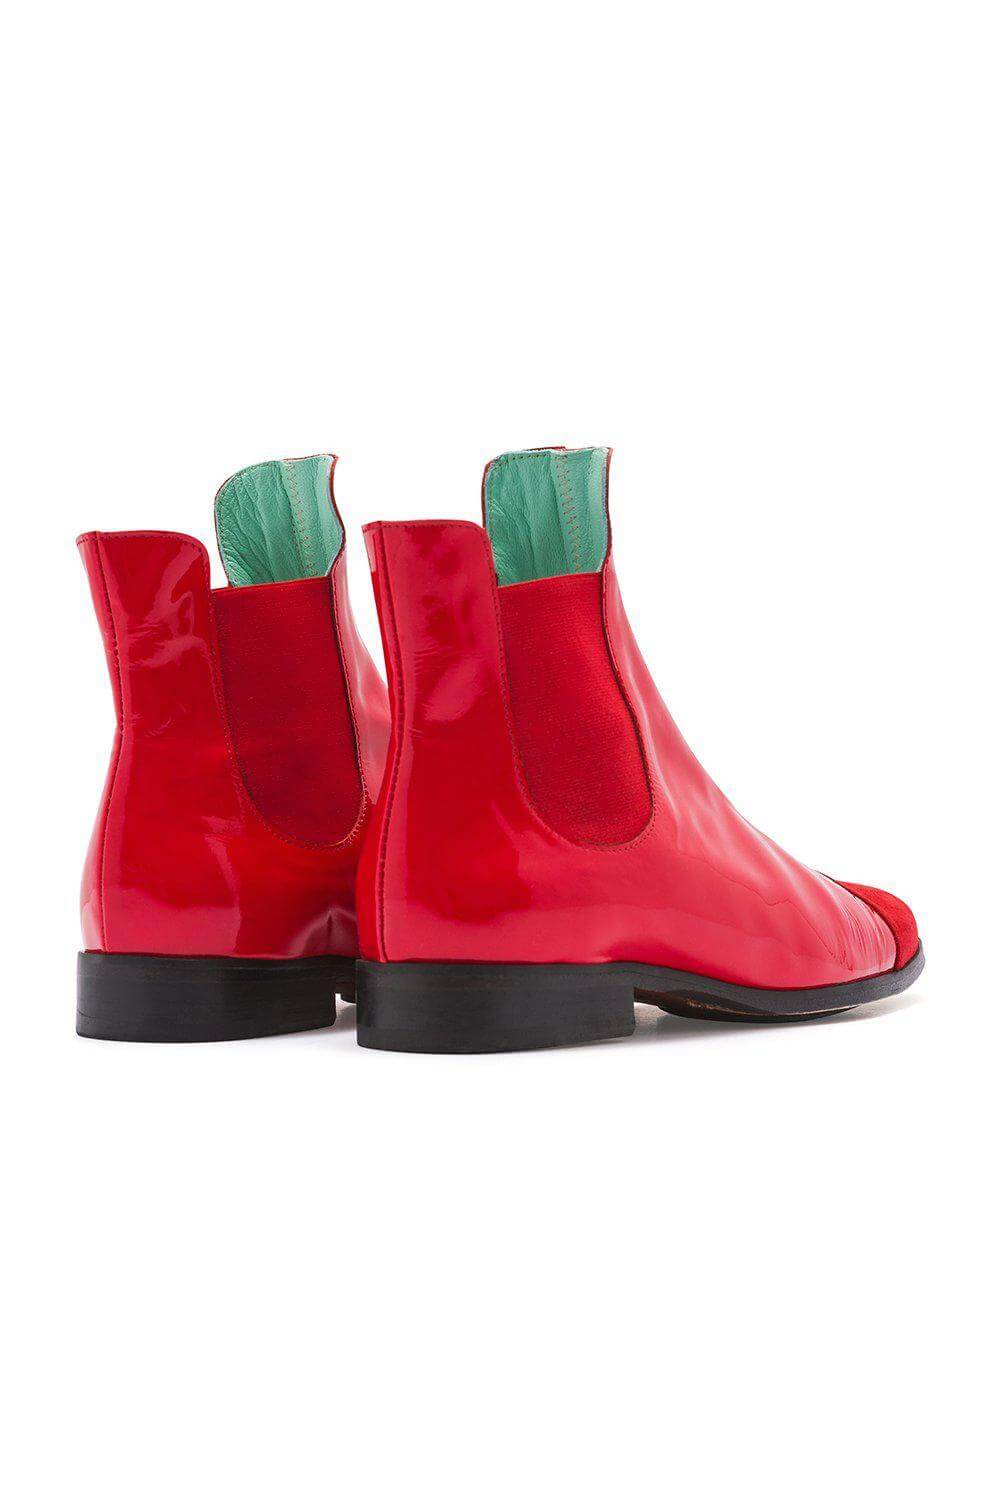 Duchesse boots in red leather